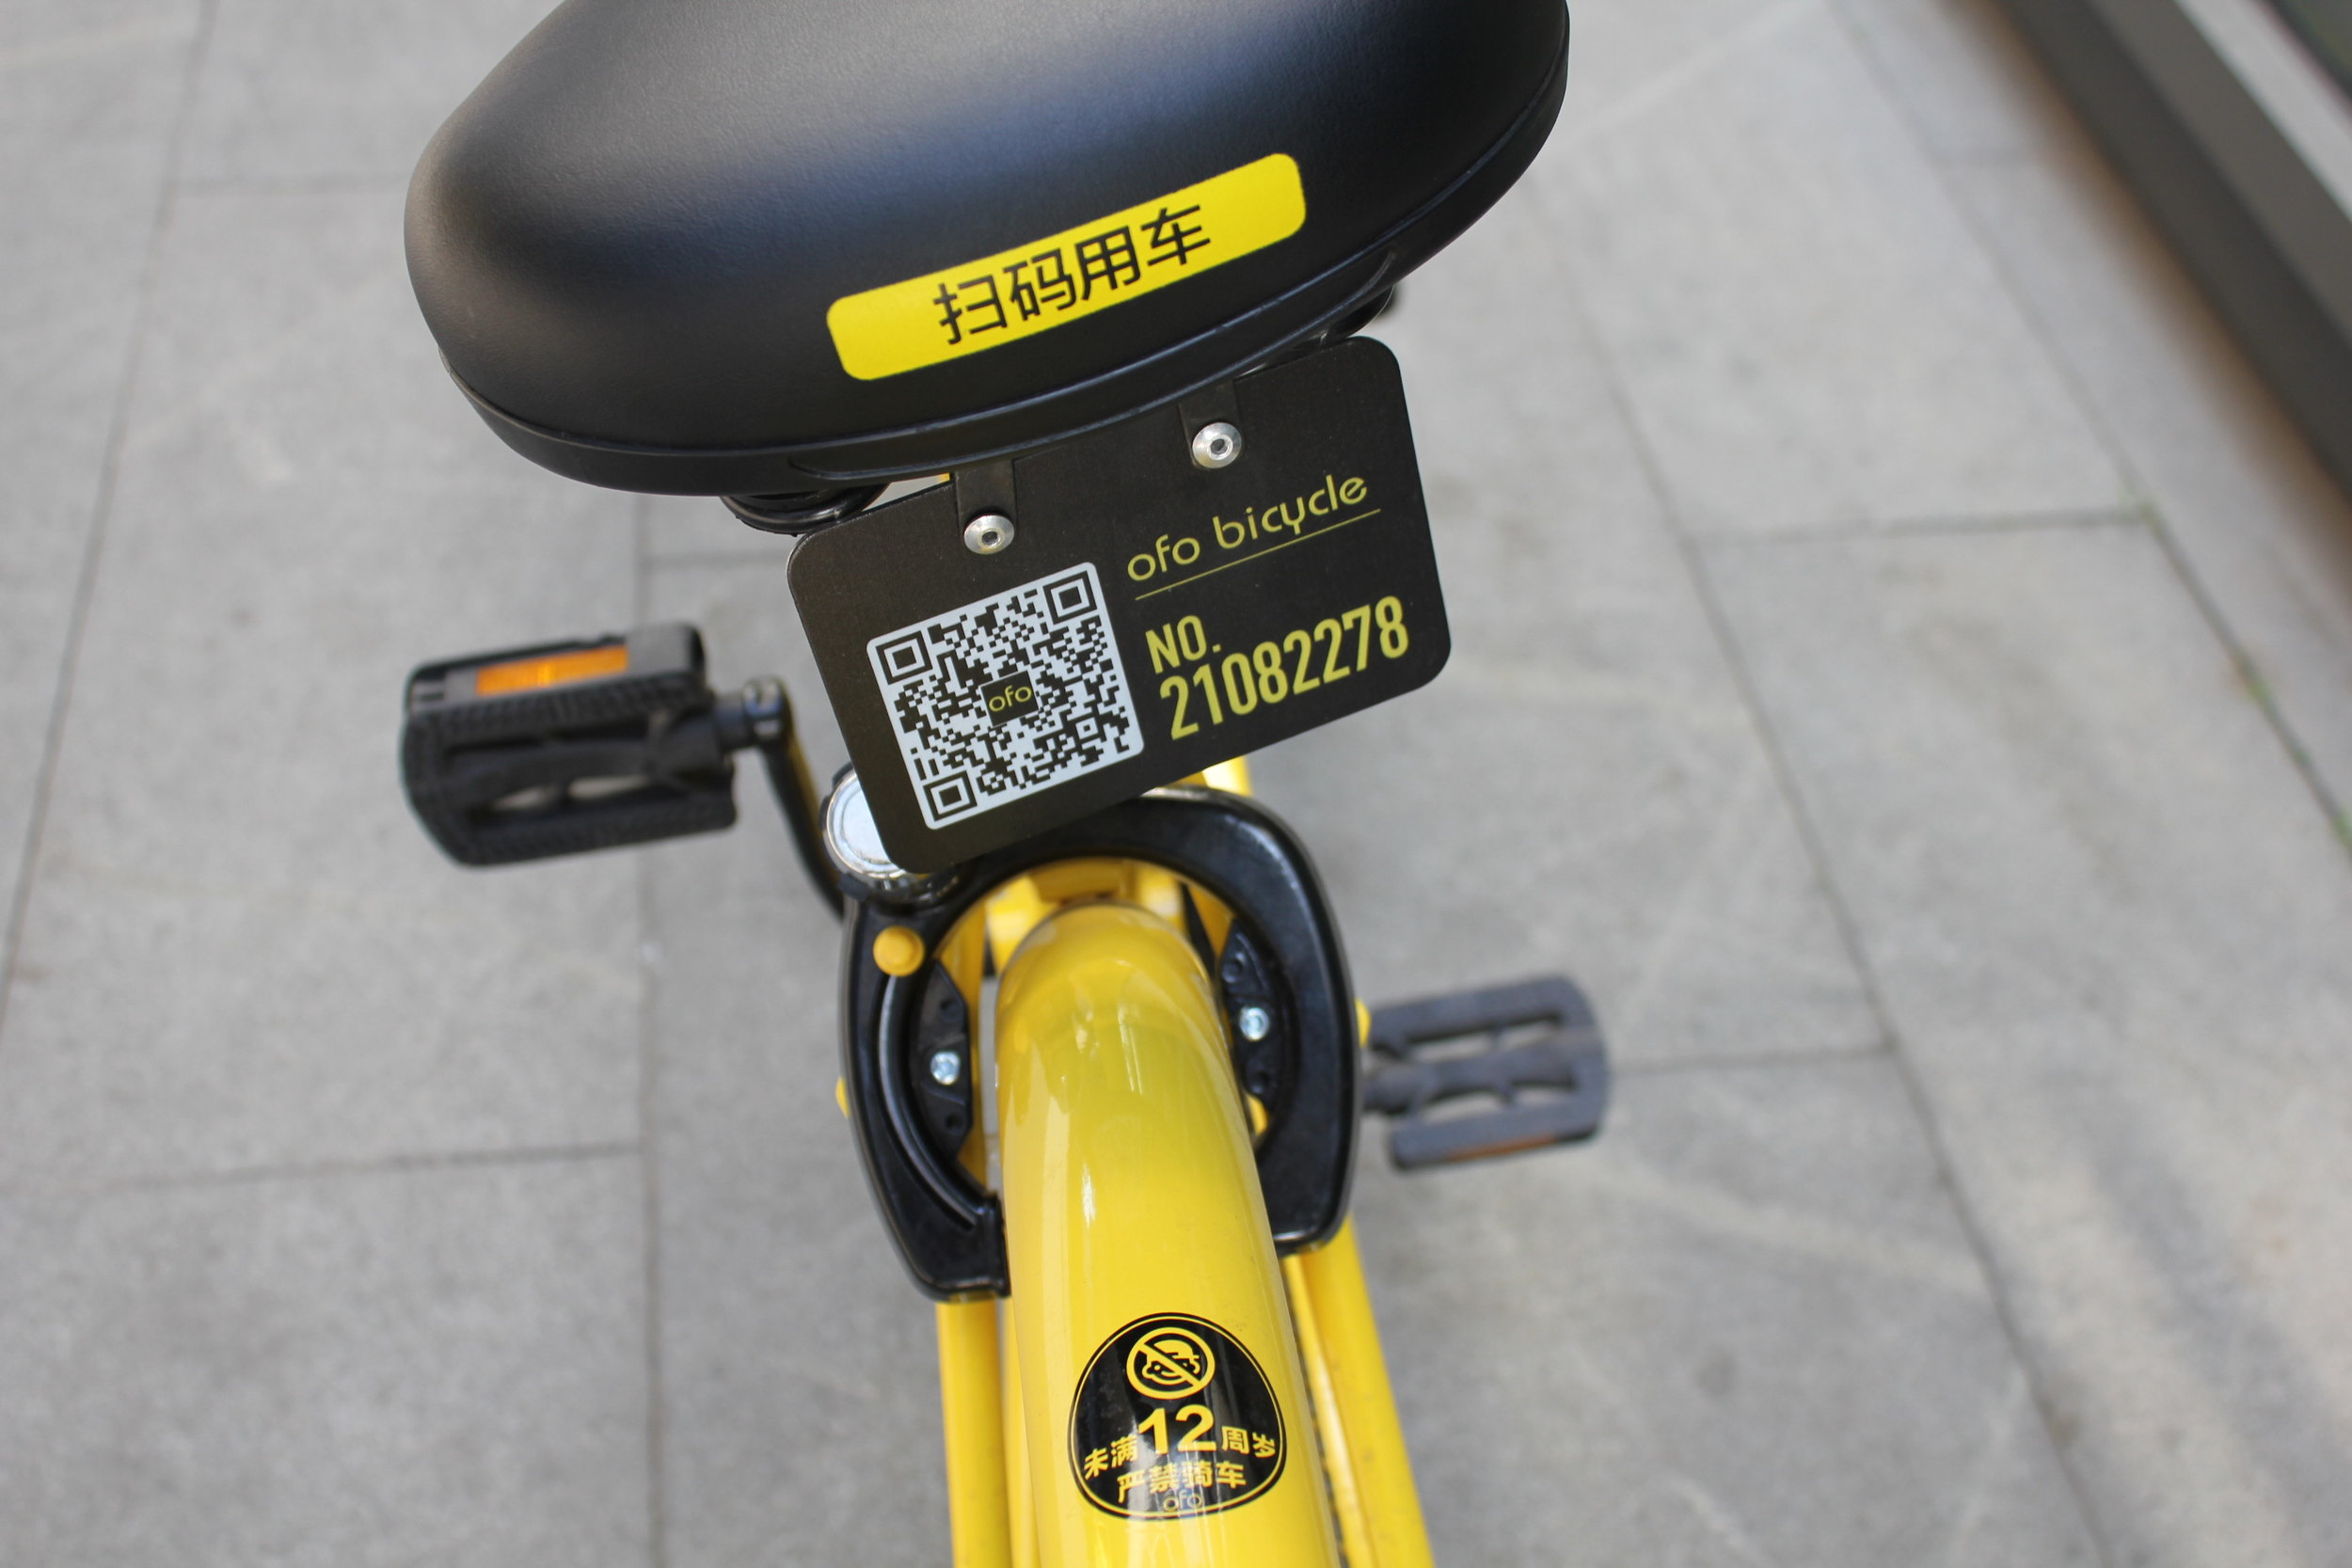 Ofo bicycle – QR code